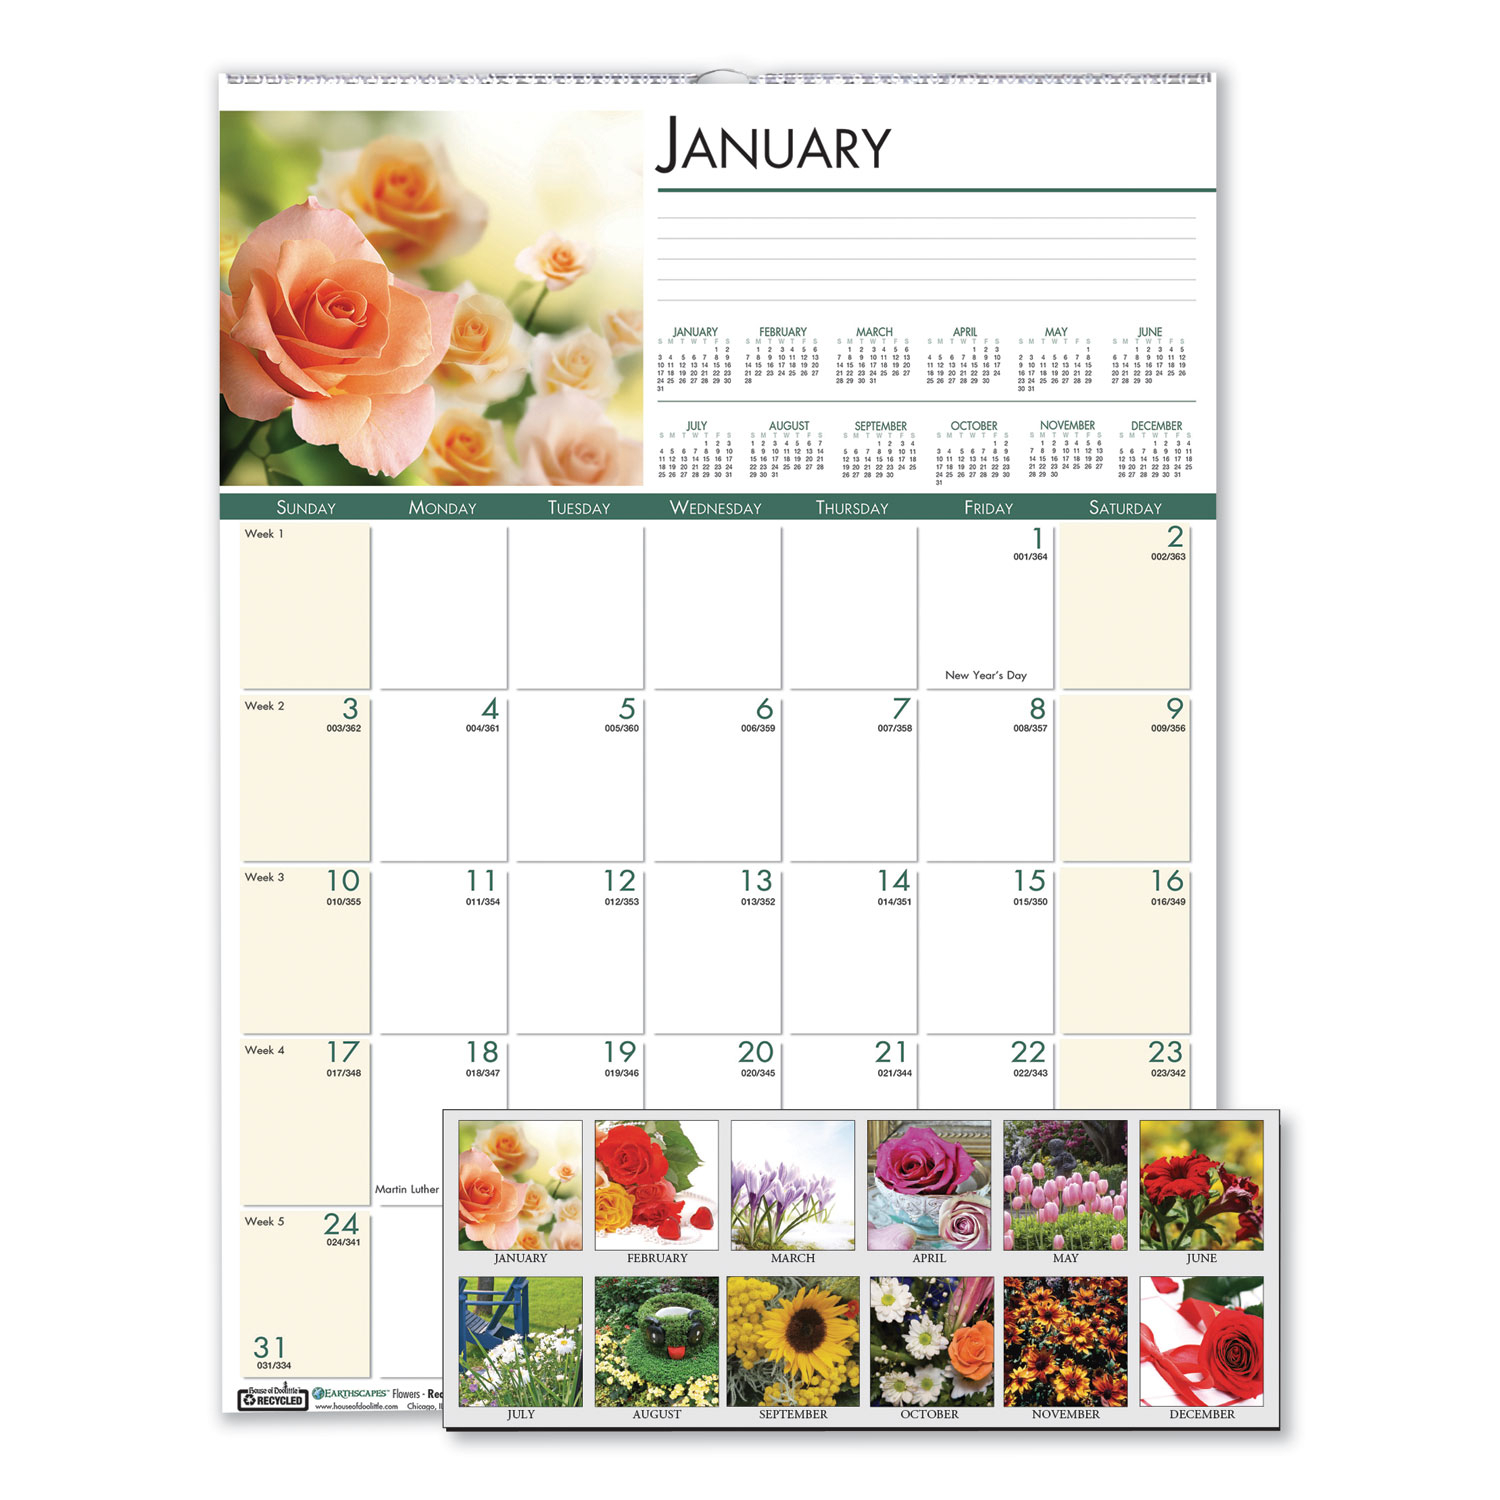 Recycled Floral Monthly Wall Calendar, 12 X 16.5, 2021 intended for Tropical Floral: Calendar 2021 Monthly